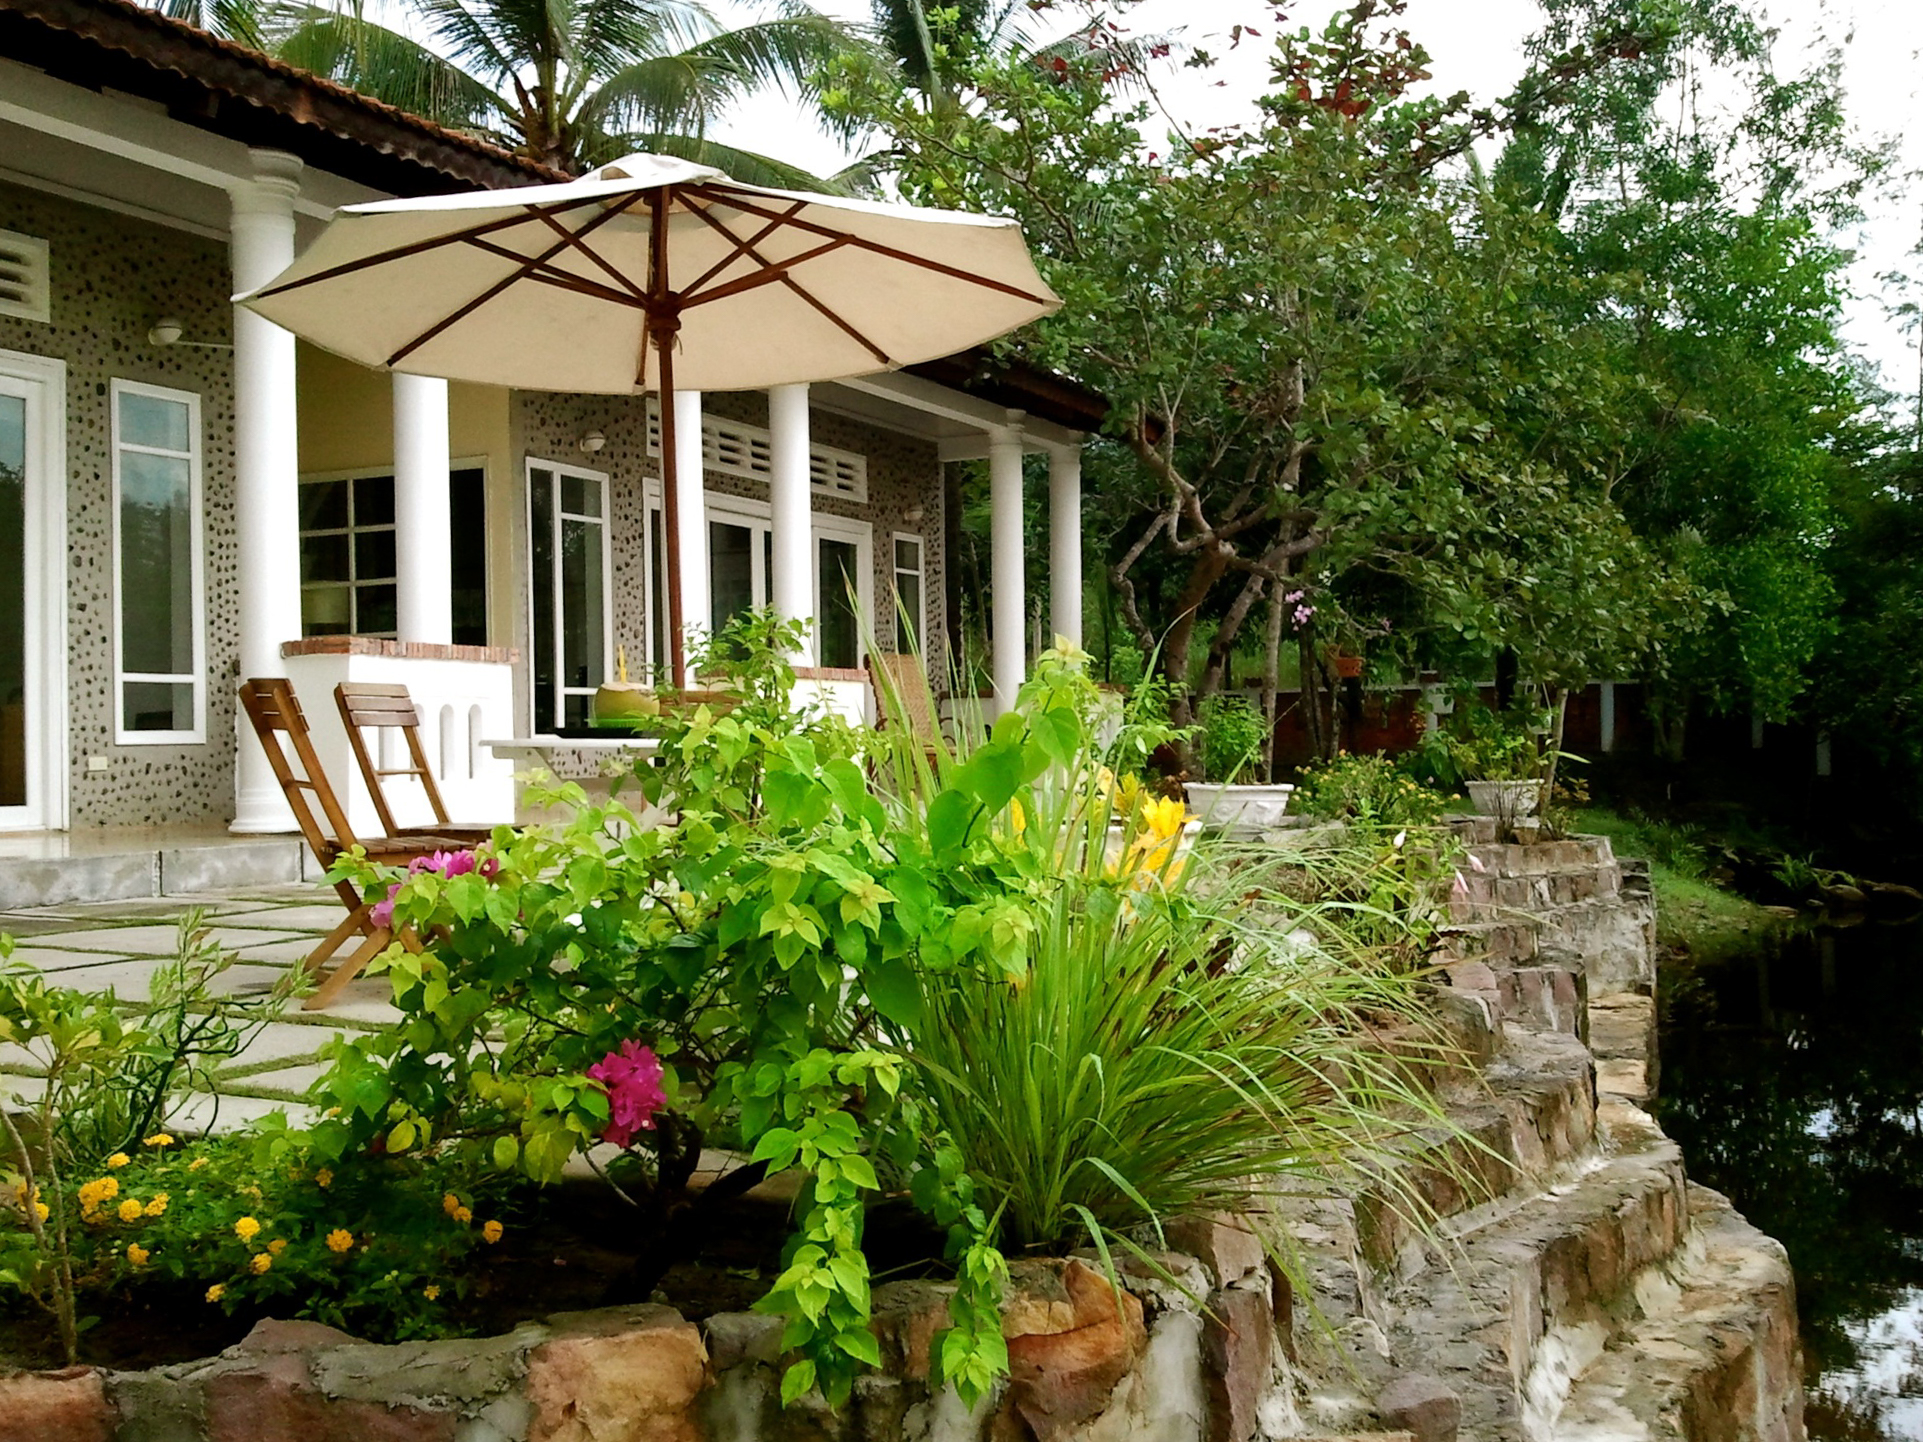 phuo-quoc-bamboo-cottage-5.jpg